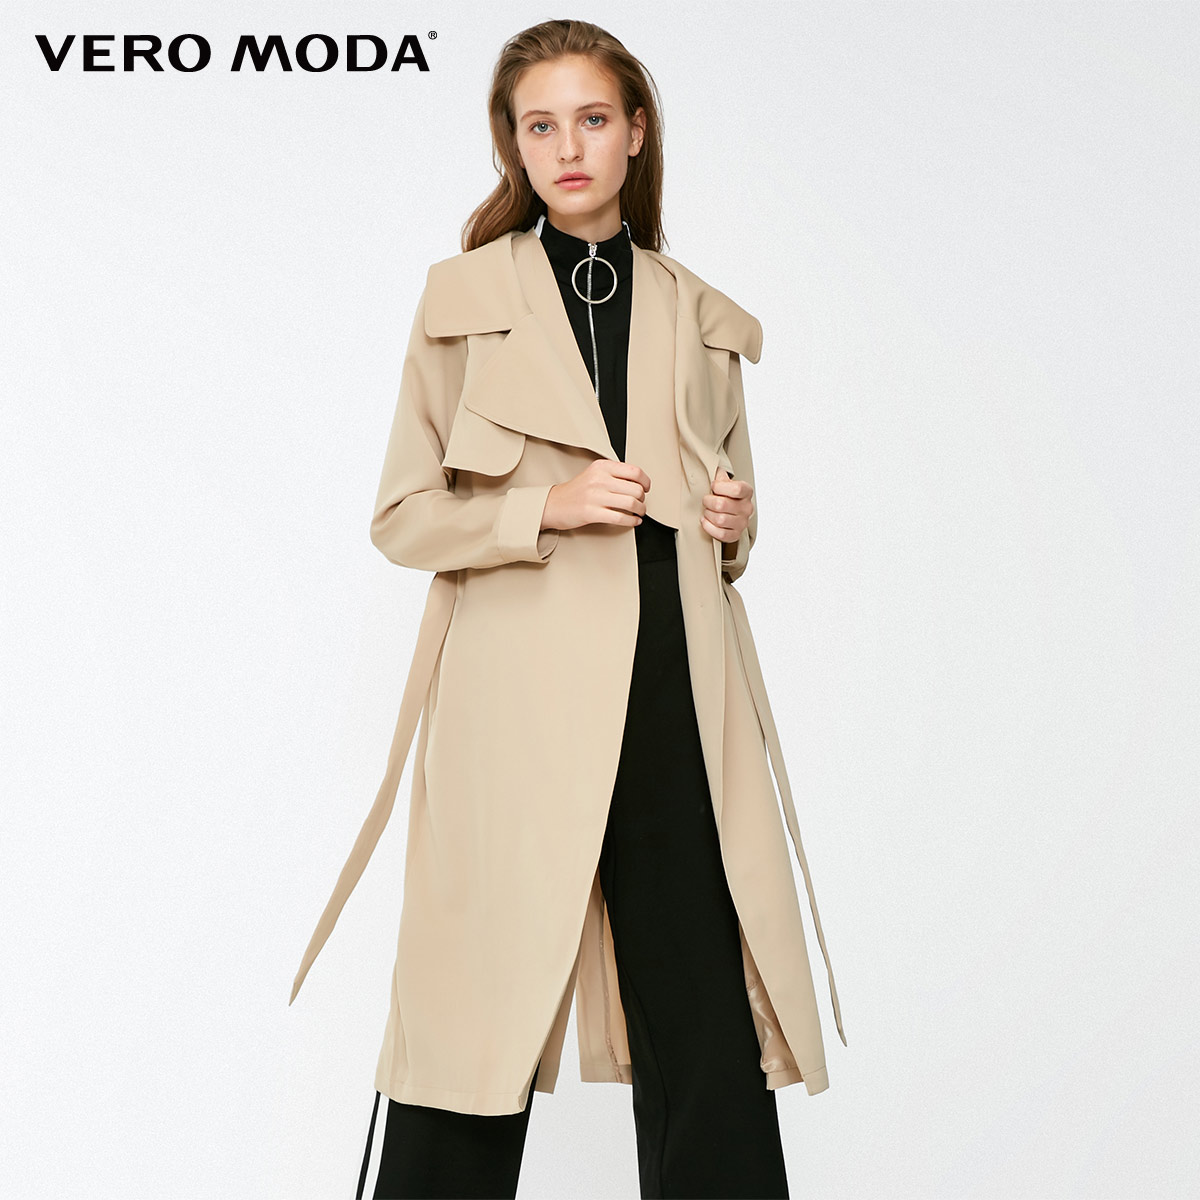 Vero Moda 2019 New Women's OL Style Two-tiered Lapel Lace-up Wind Coat   Trench   Coat | 318421502